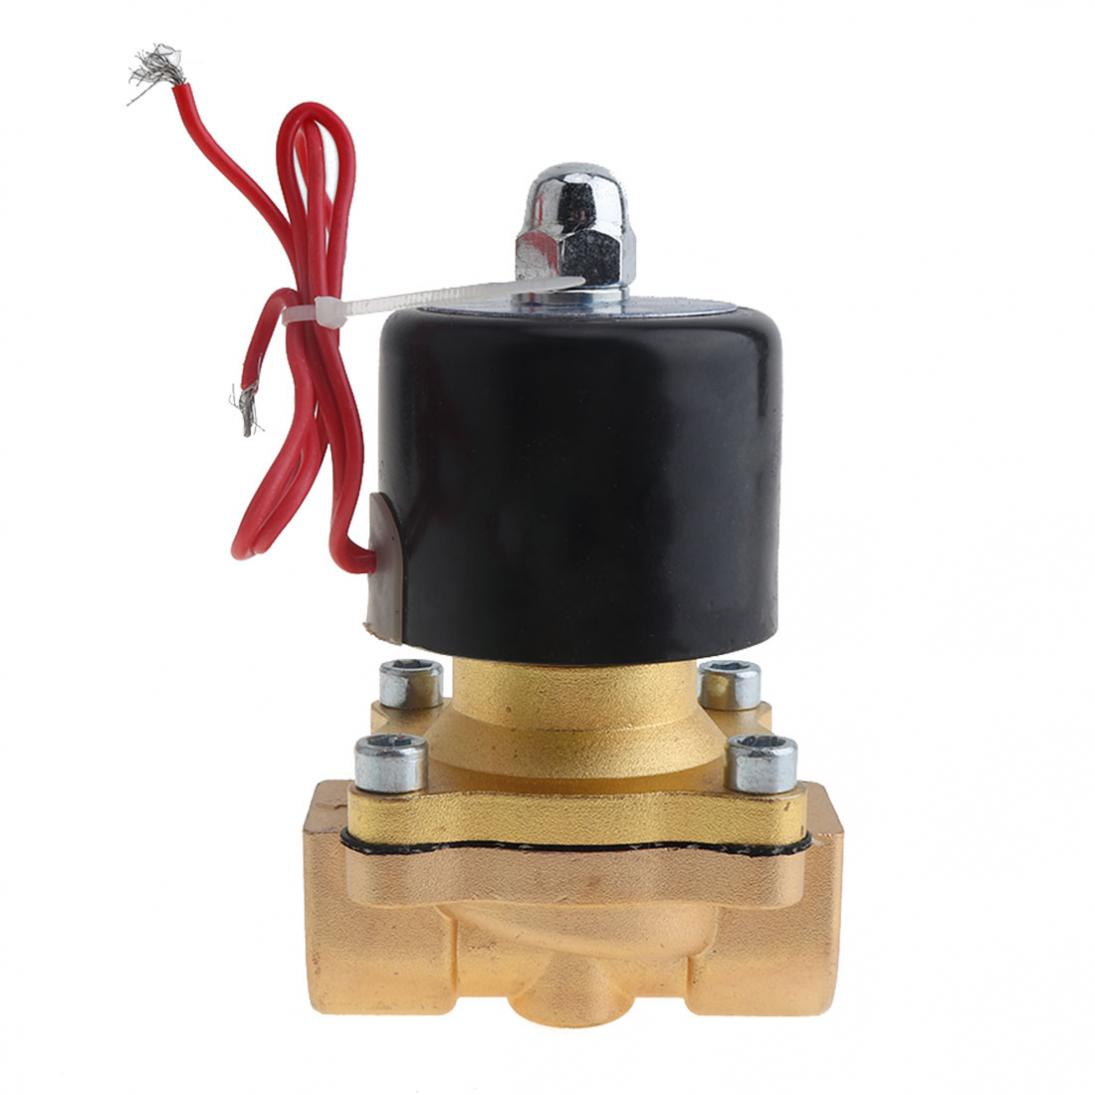 1-2-039-039-DC12-Brass-Electric-Solenoid-Valve-N-C-Gas-Water-Fuel-Air-Solid-Coil-New thumbnail 2